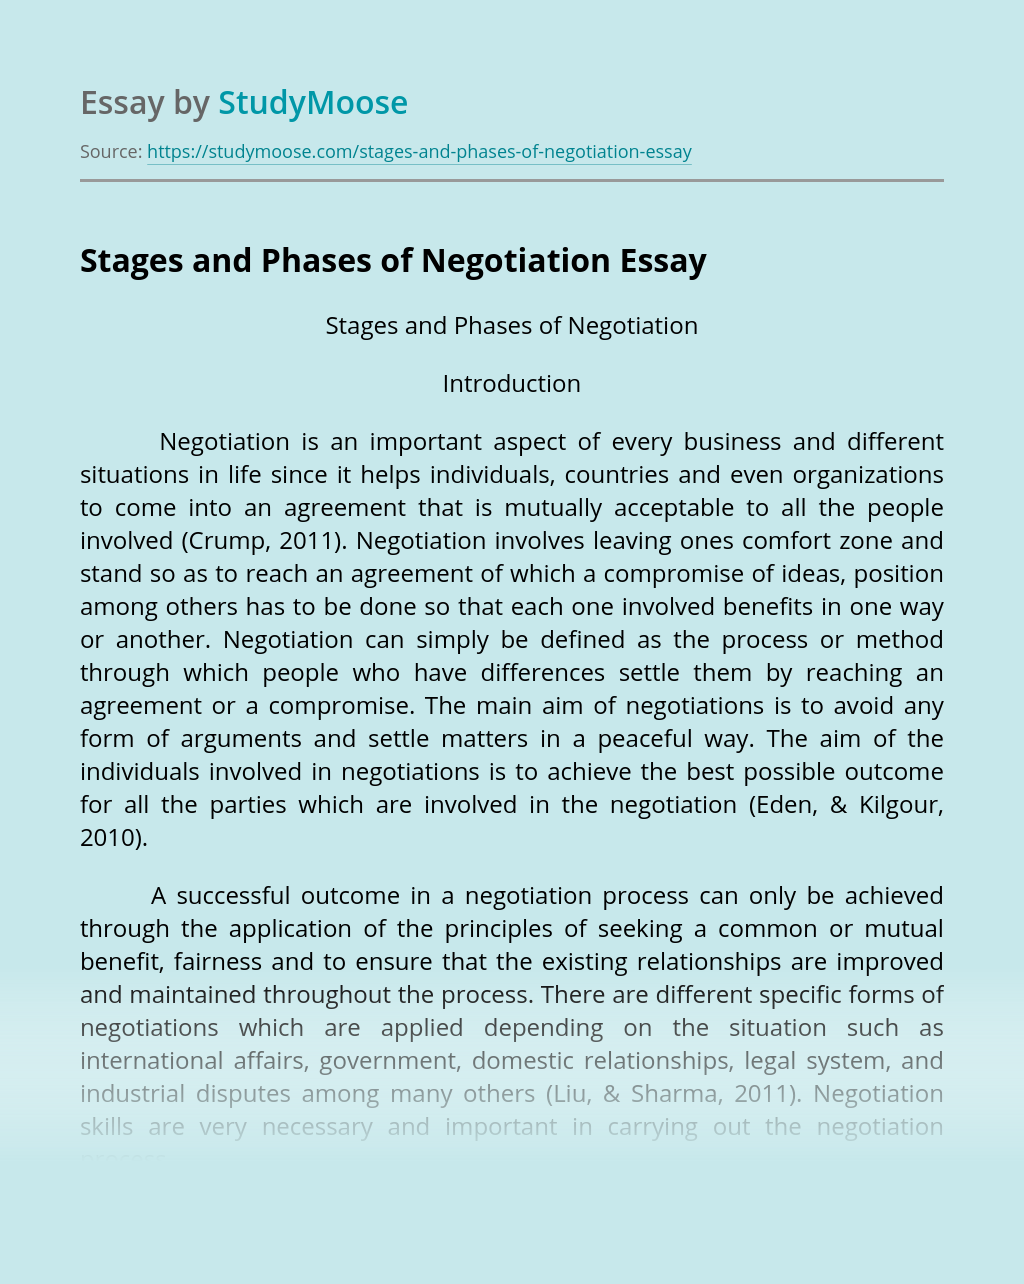 Stages and Phases of Negotiation